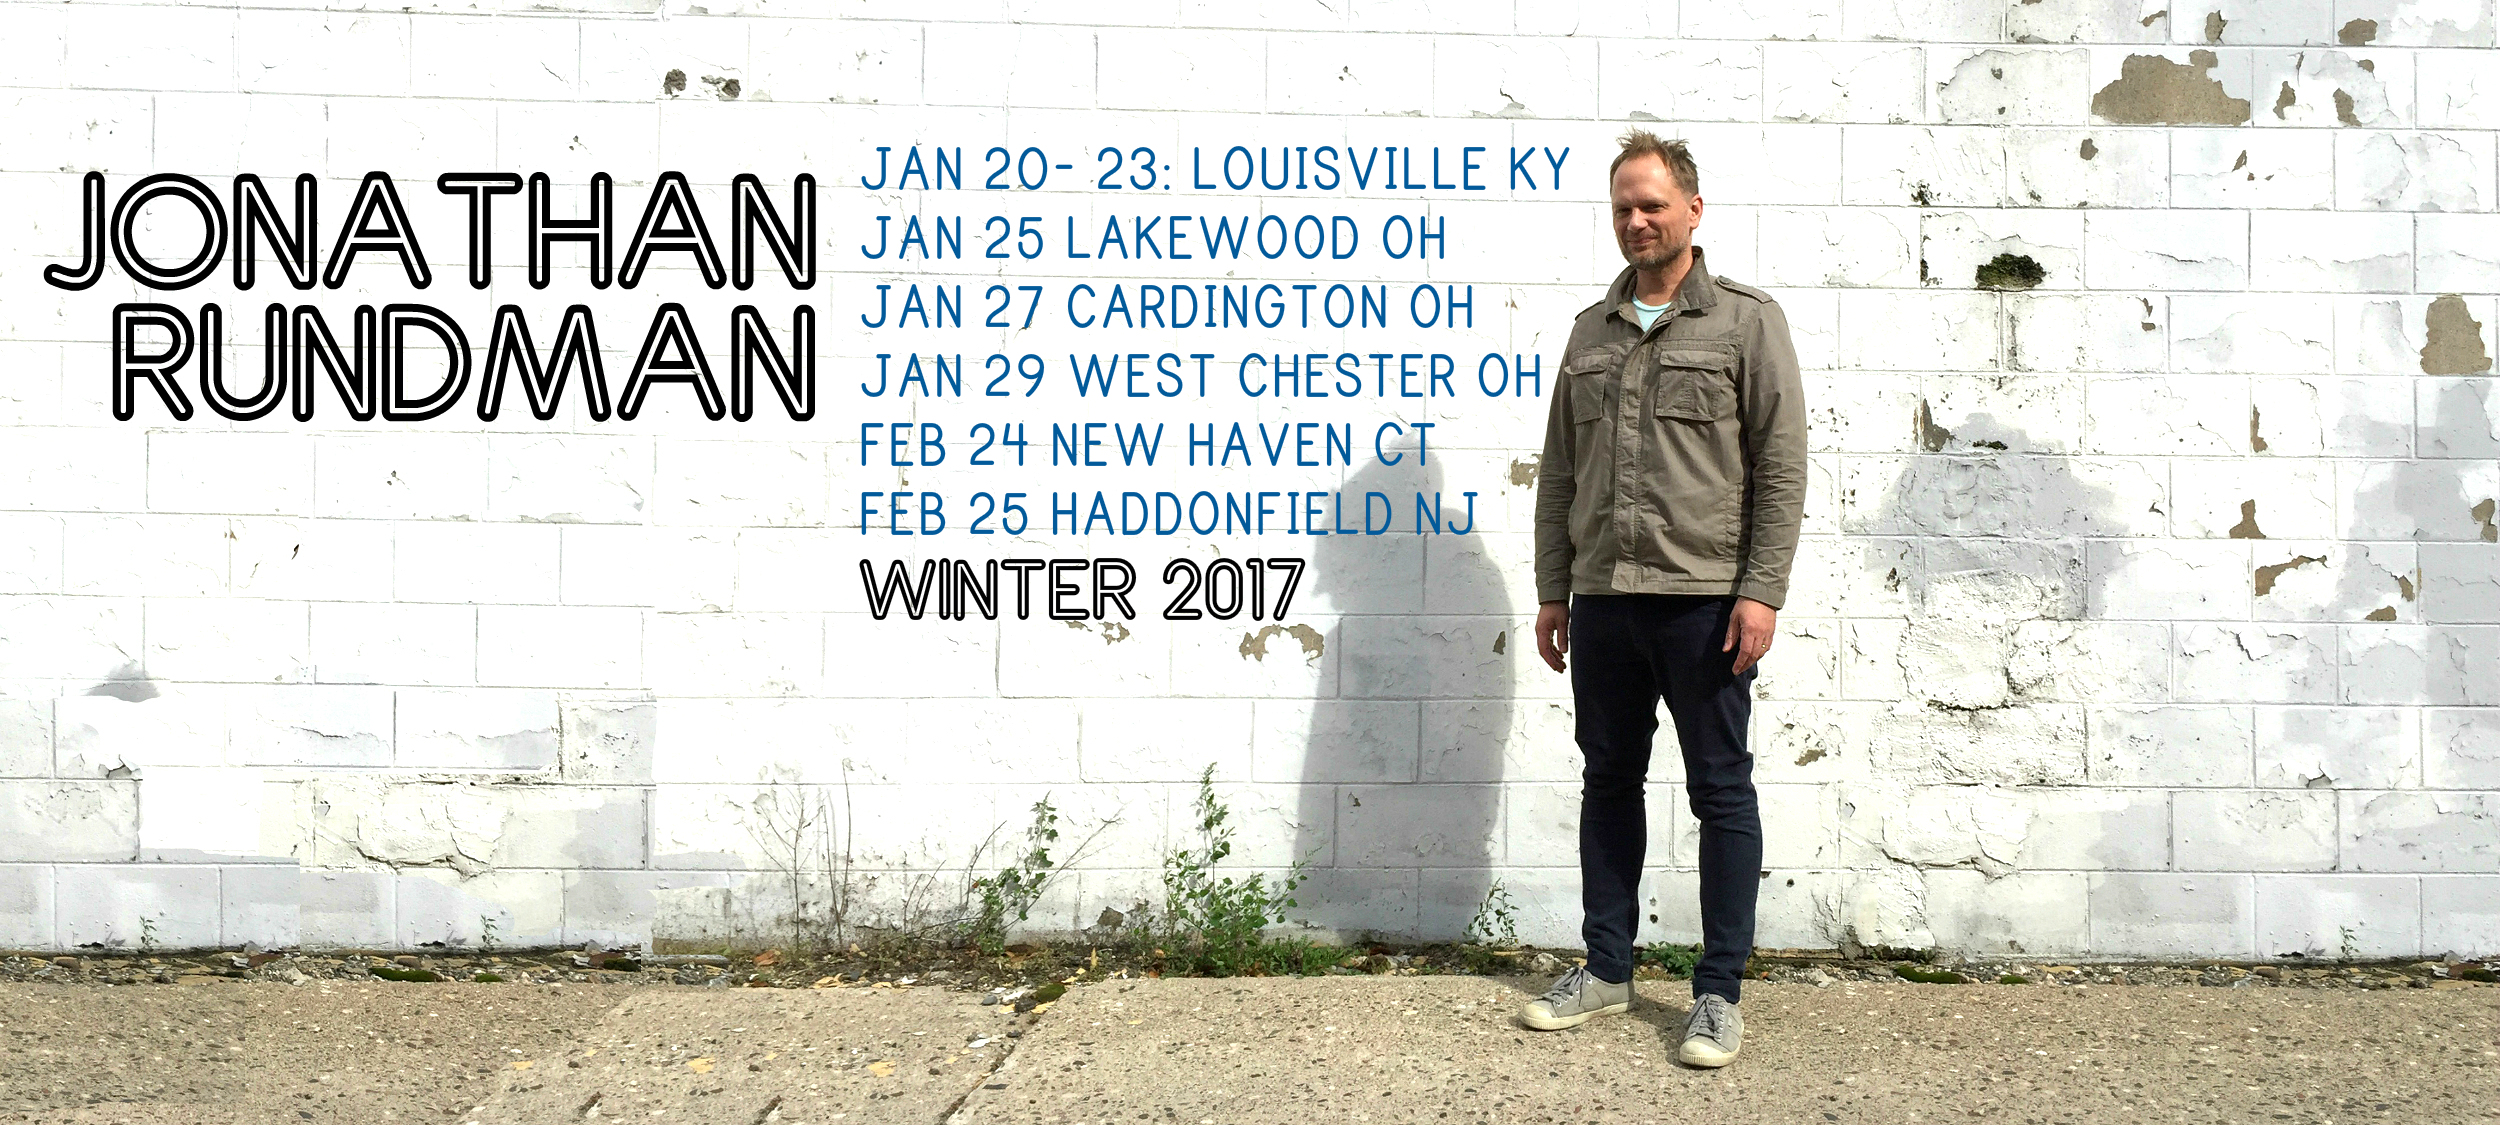 Come see me on tour this Winter!